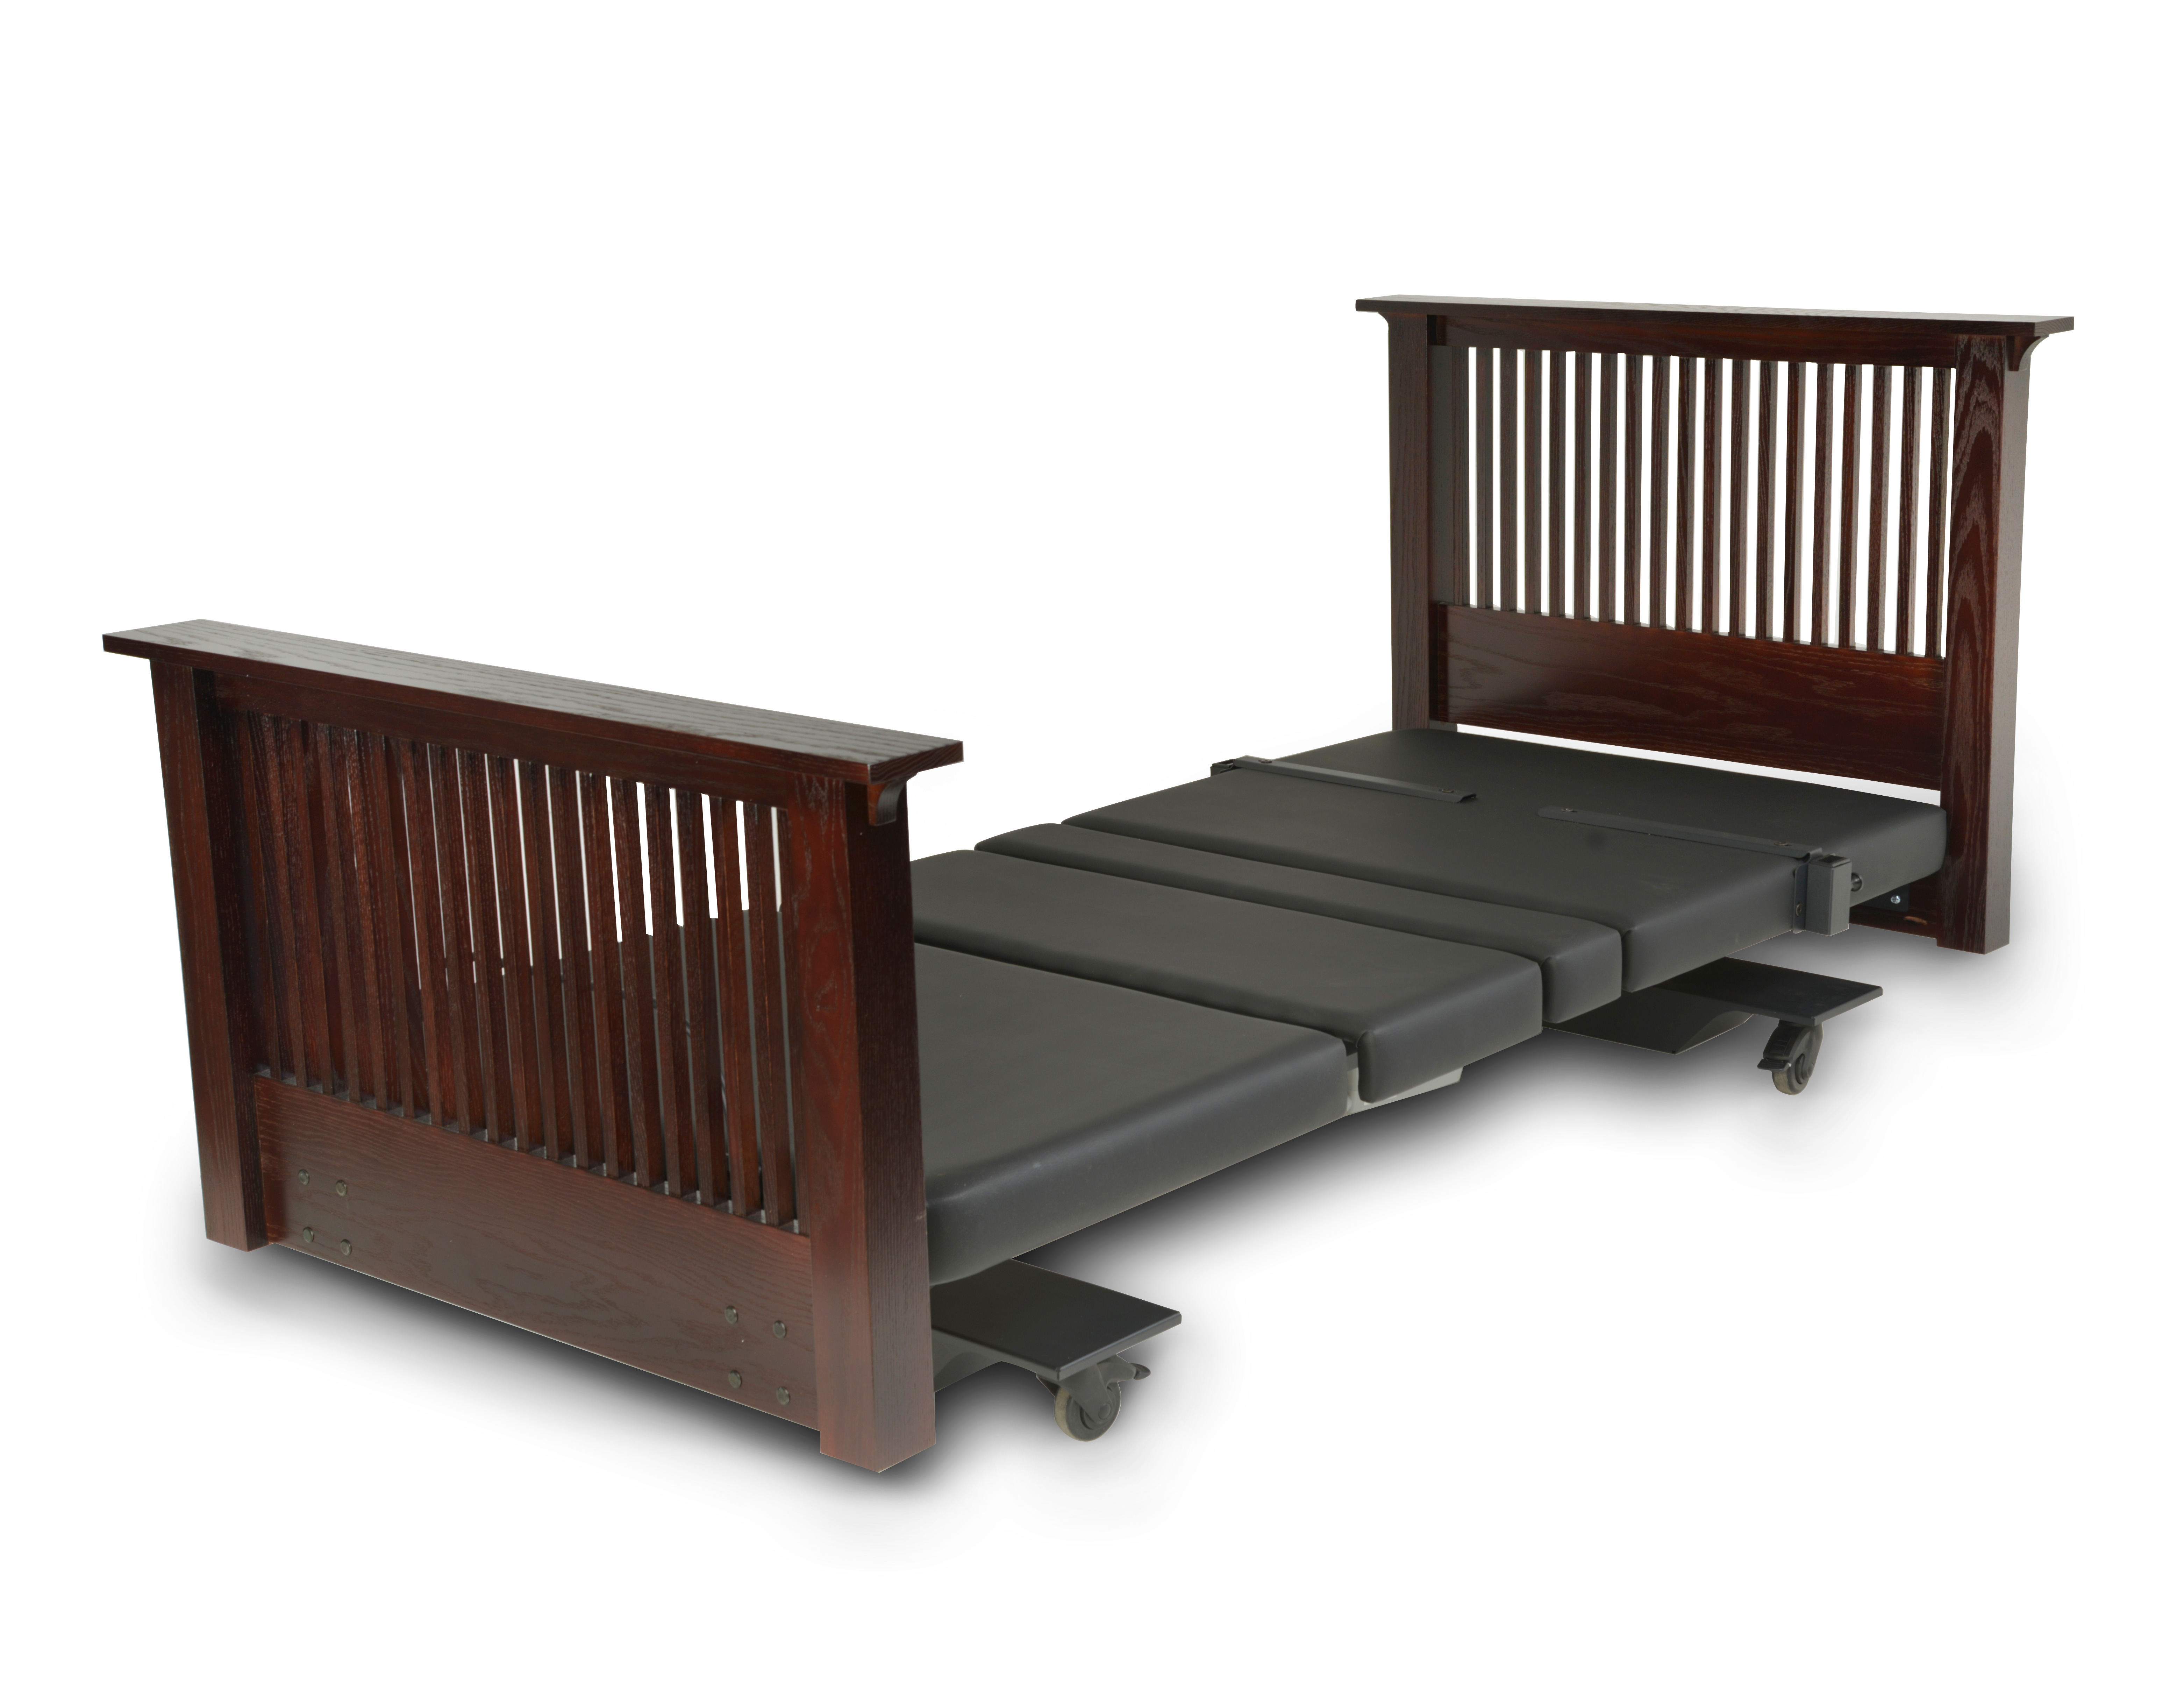 Assured Comfort Hi Low Adjustable Bed - Mobile Series - Mission Style - Down position - Assist Rail Adaptive